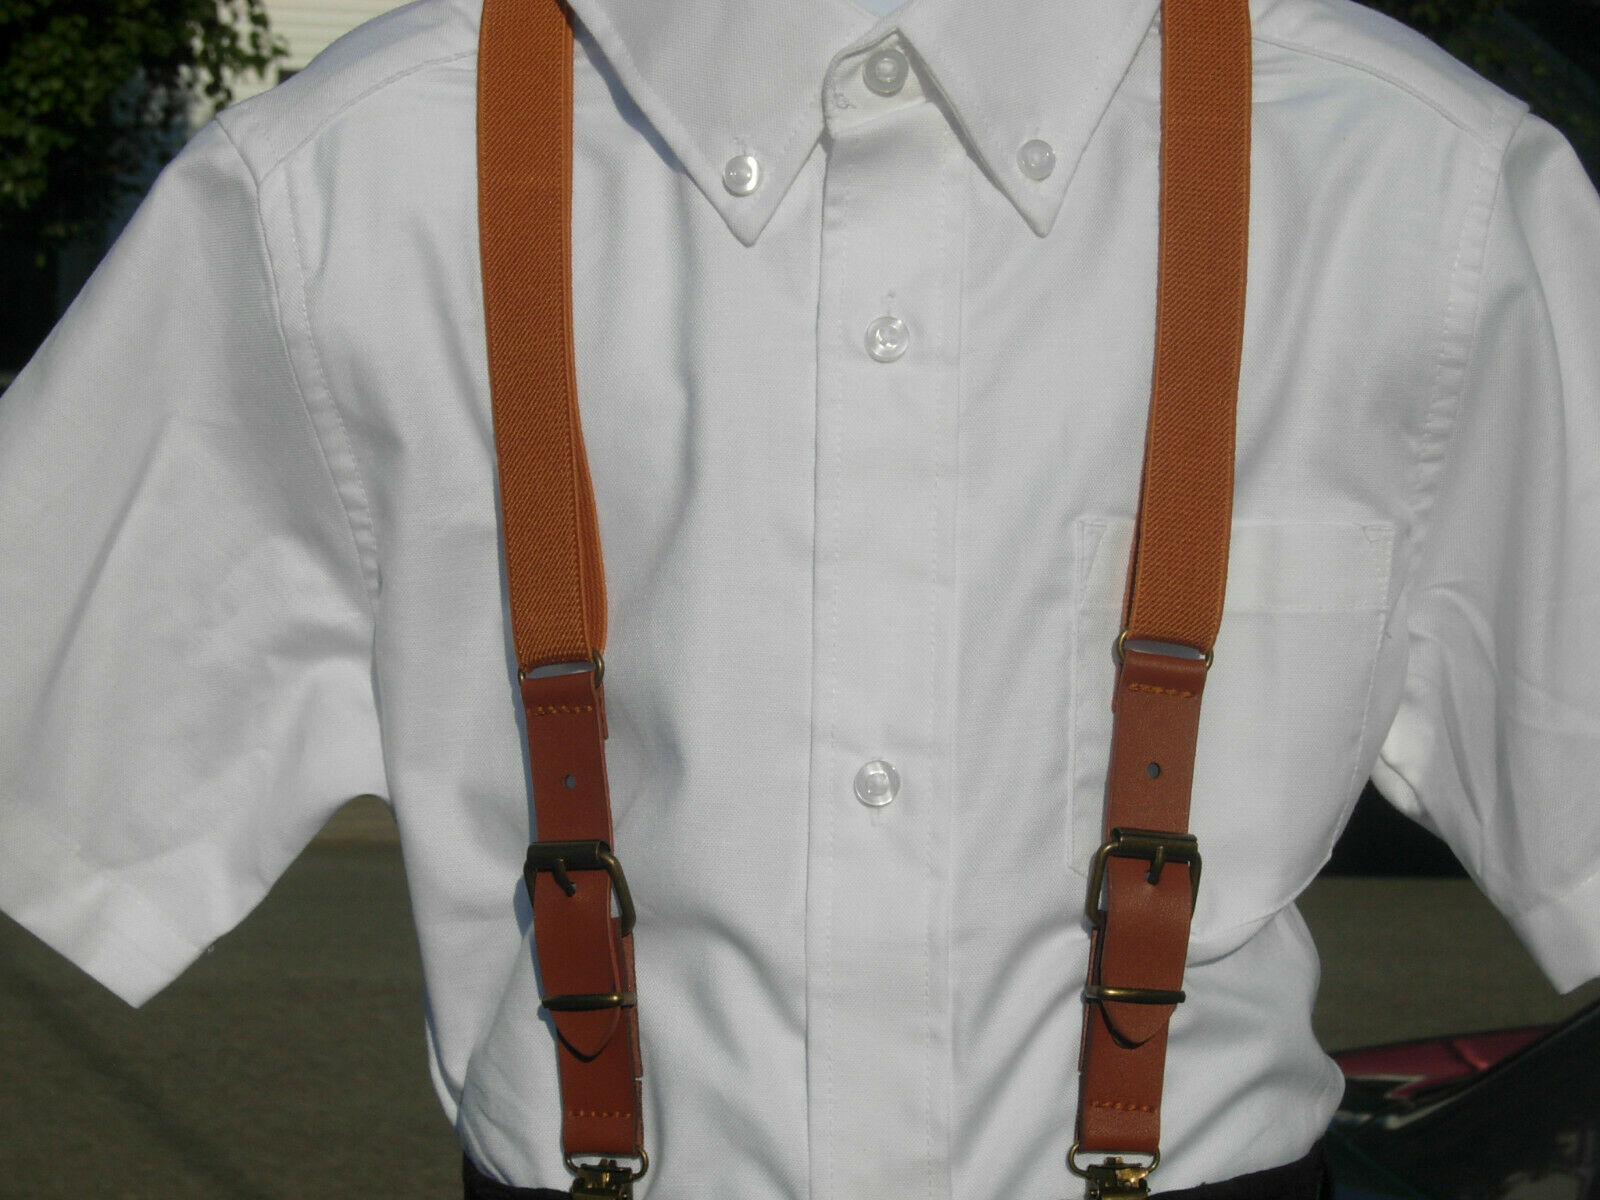 Boys Suspenders / Brown Suspenders with Faux Leather Buckles / 2 - 8 years old